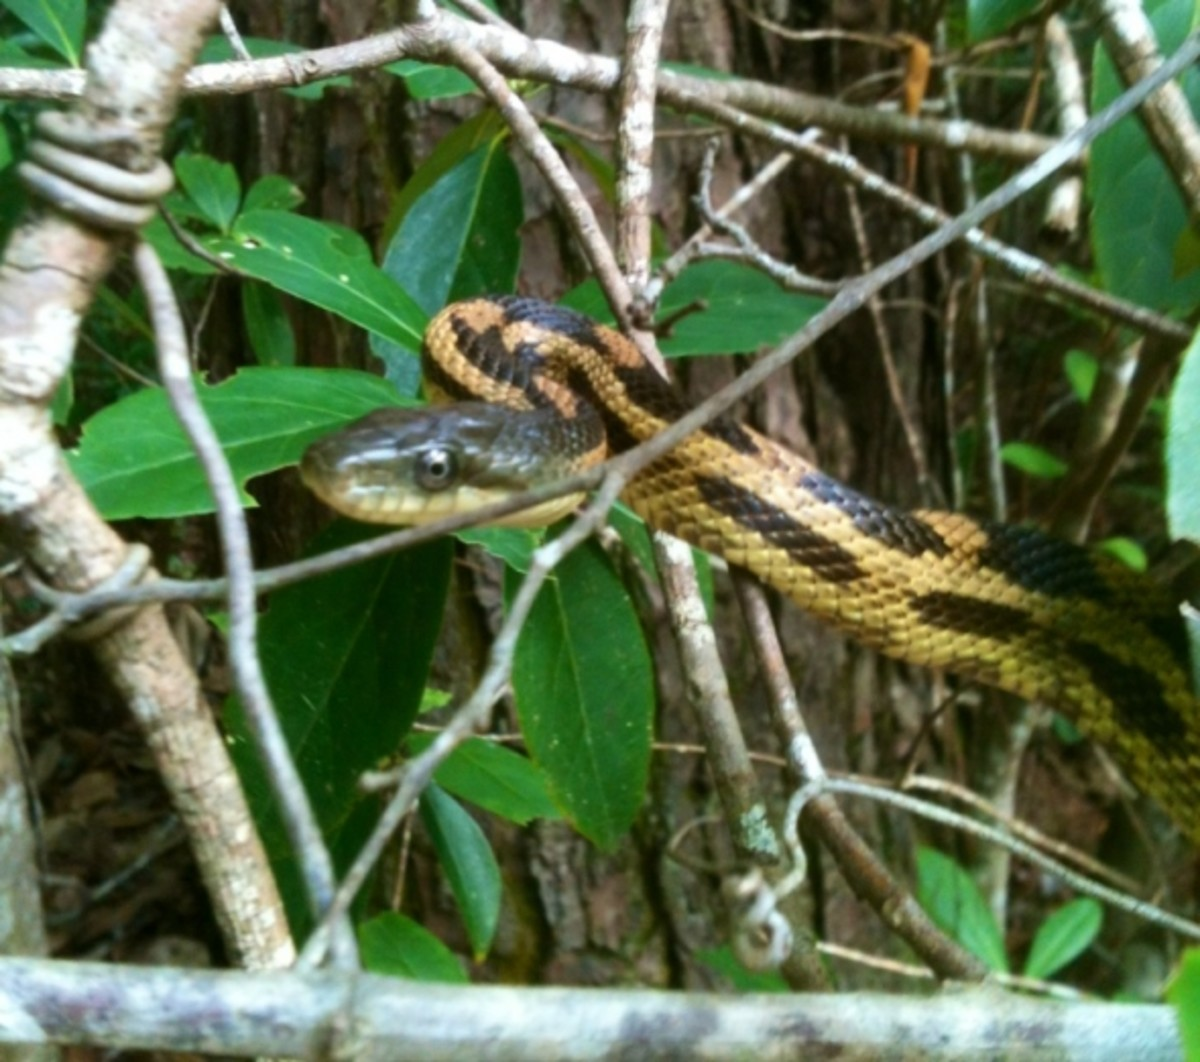 I took the Rat Snake down in the woods, far away from the house and released it in our habitat.